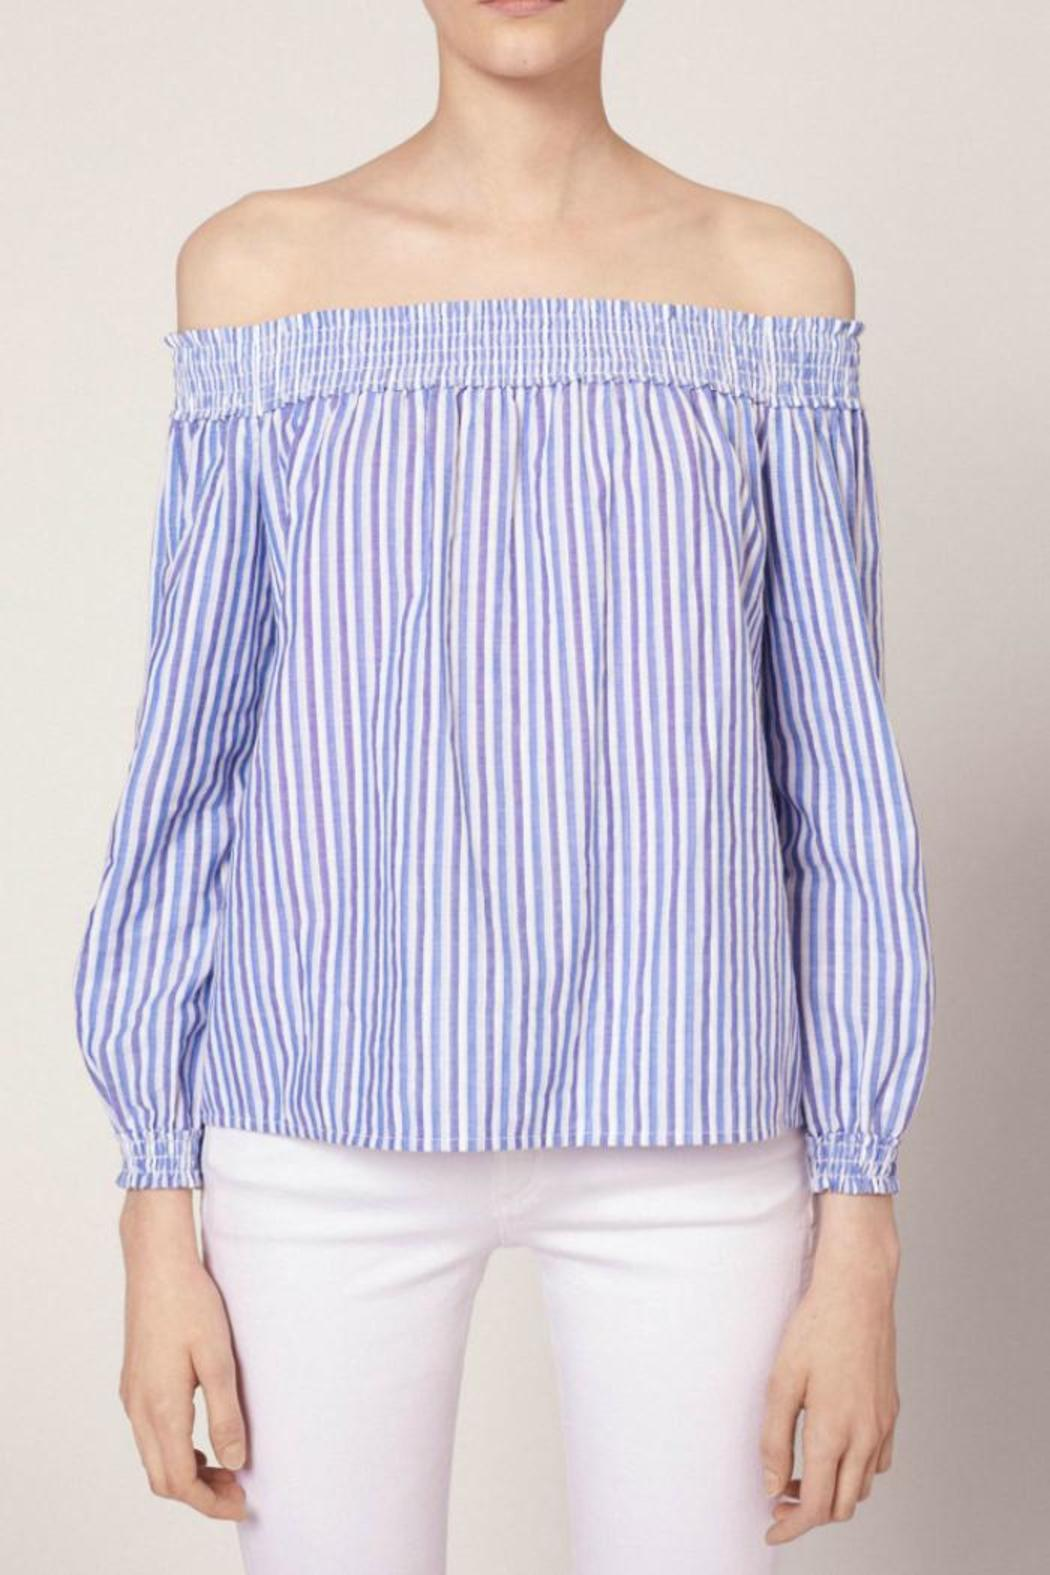 Rag & Bone Striped Drew Top - Main Image